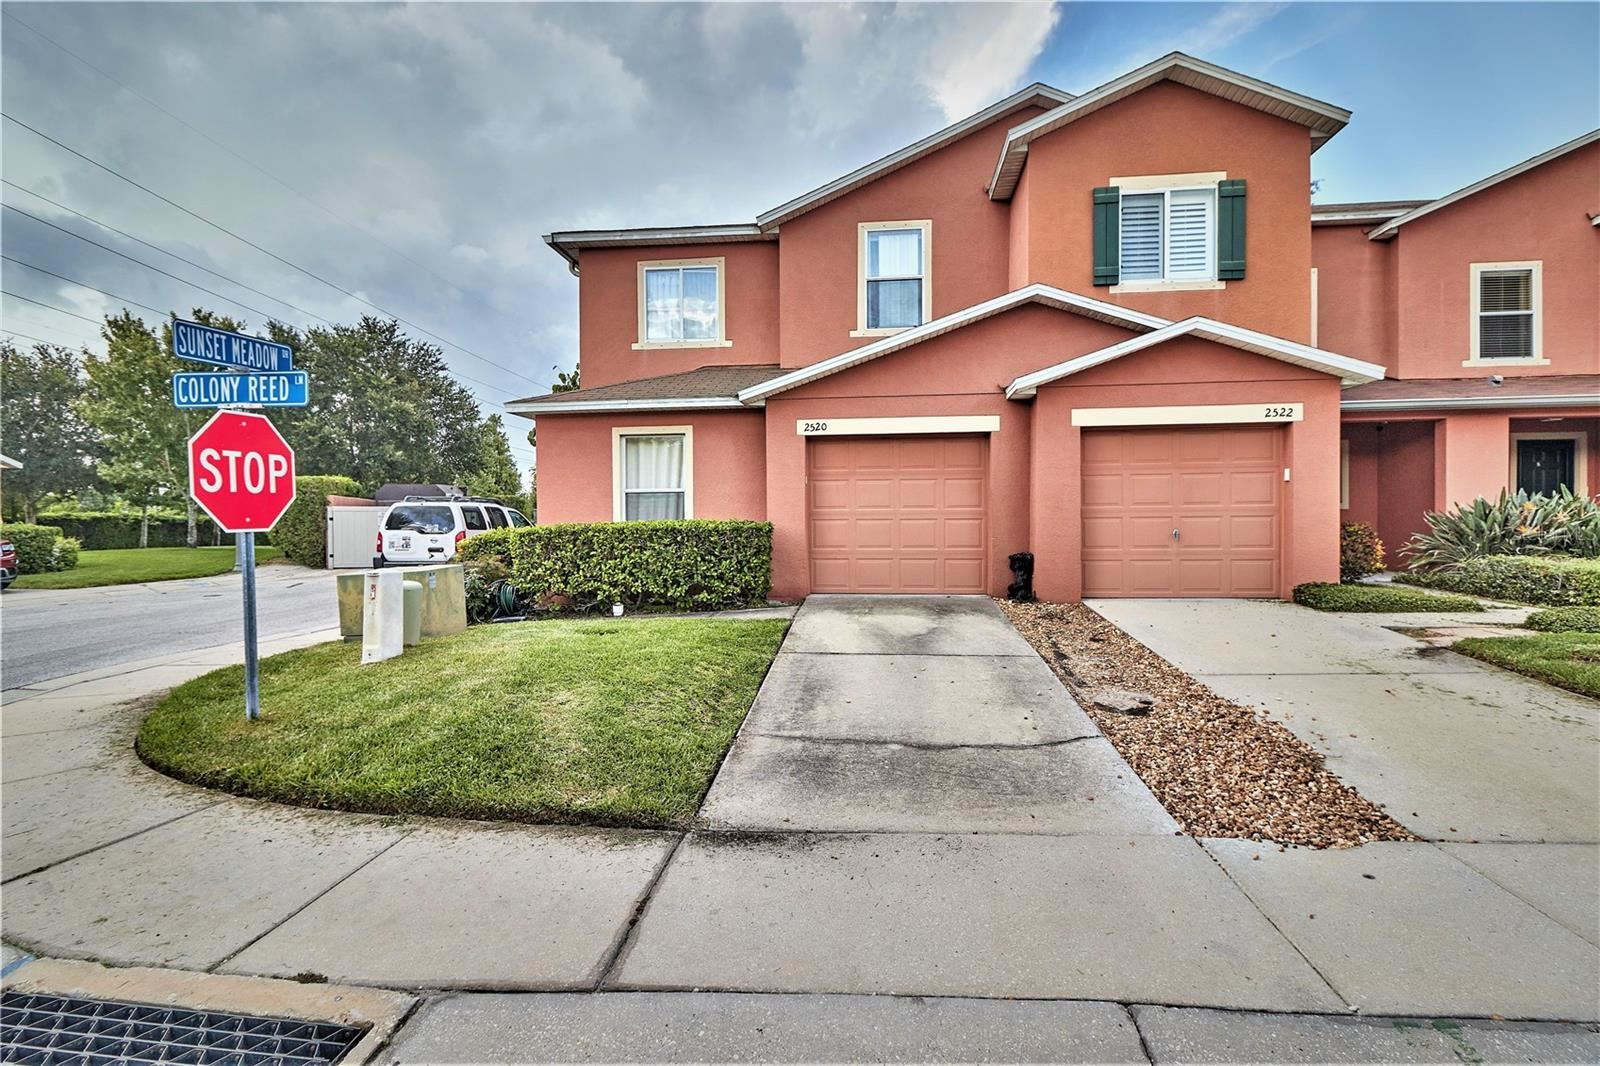 2520 COLONY REED LANE, Clearwater, FL 33763 - #: T3324379